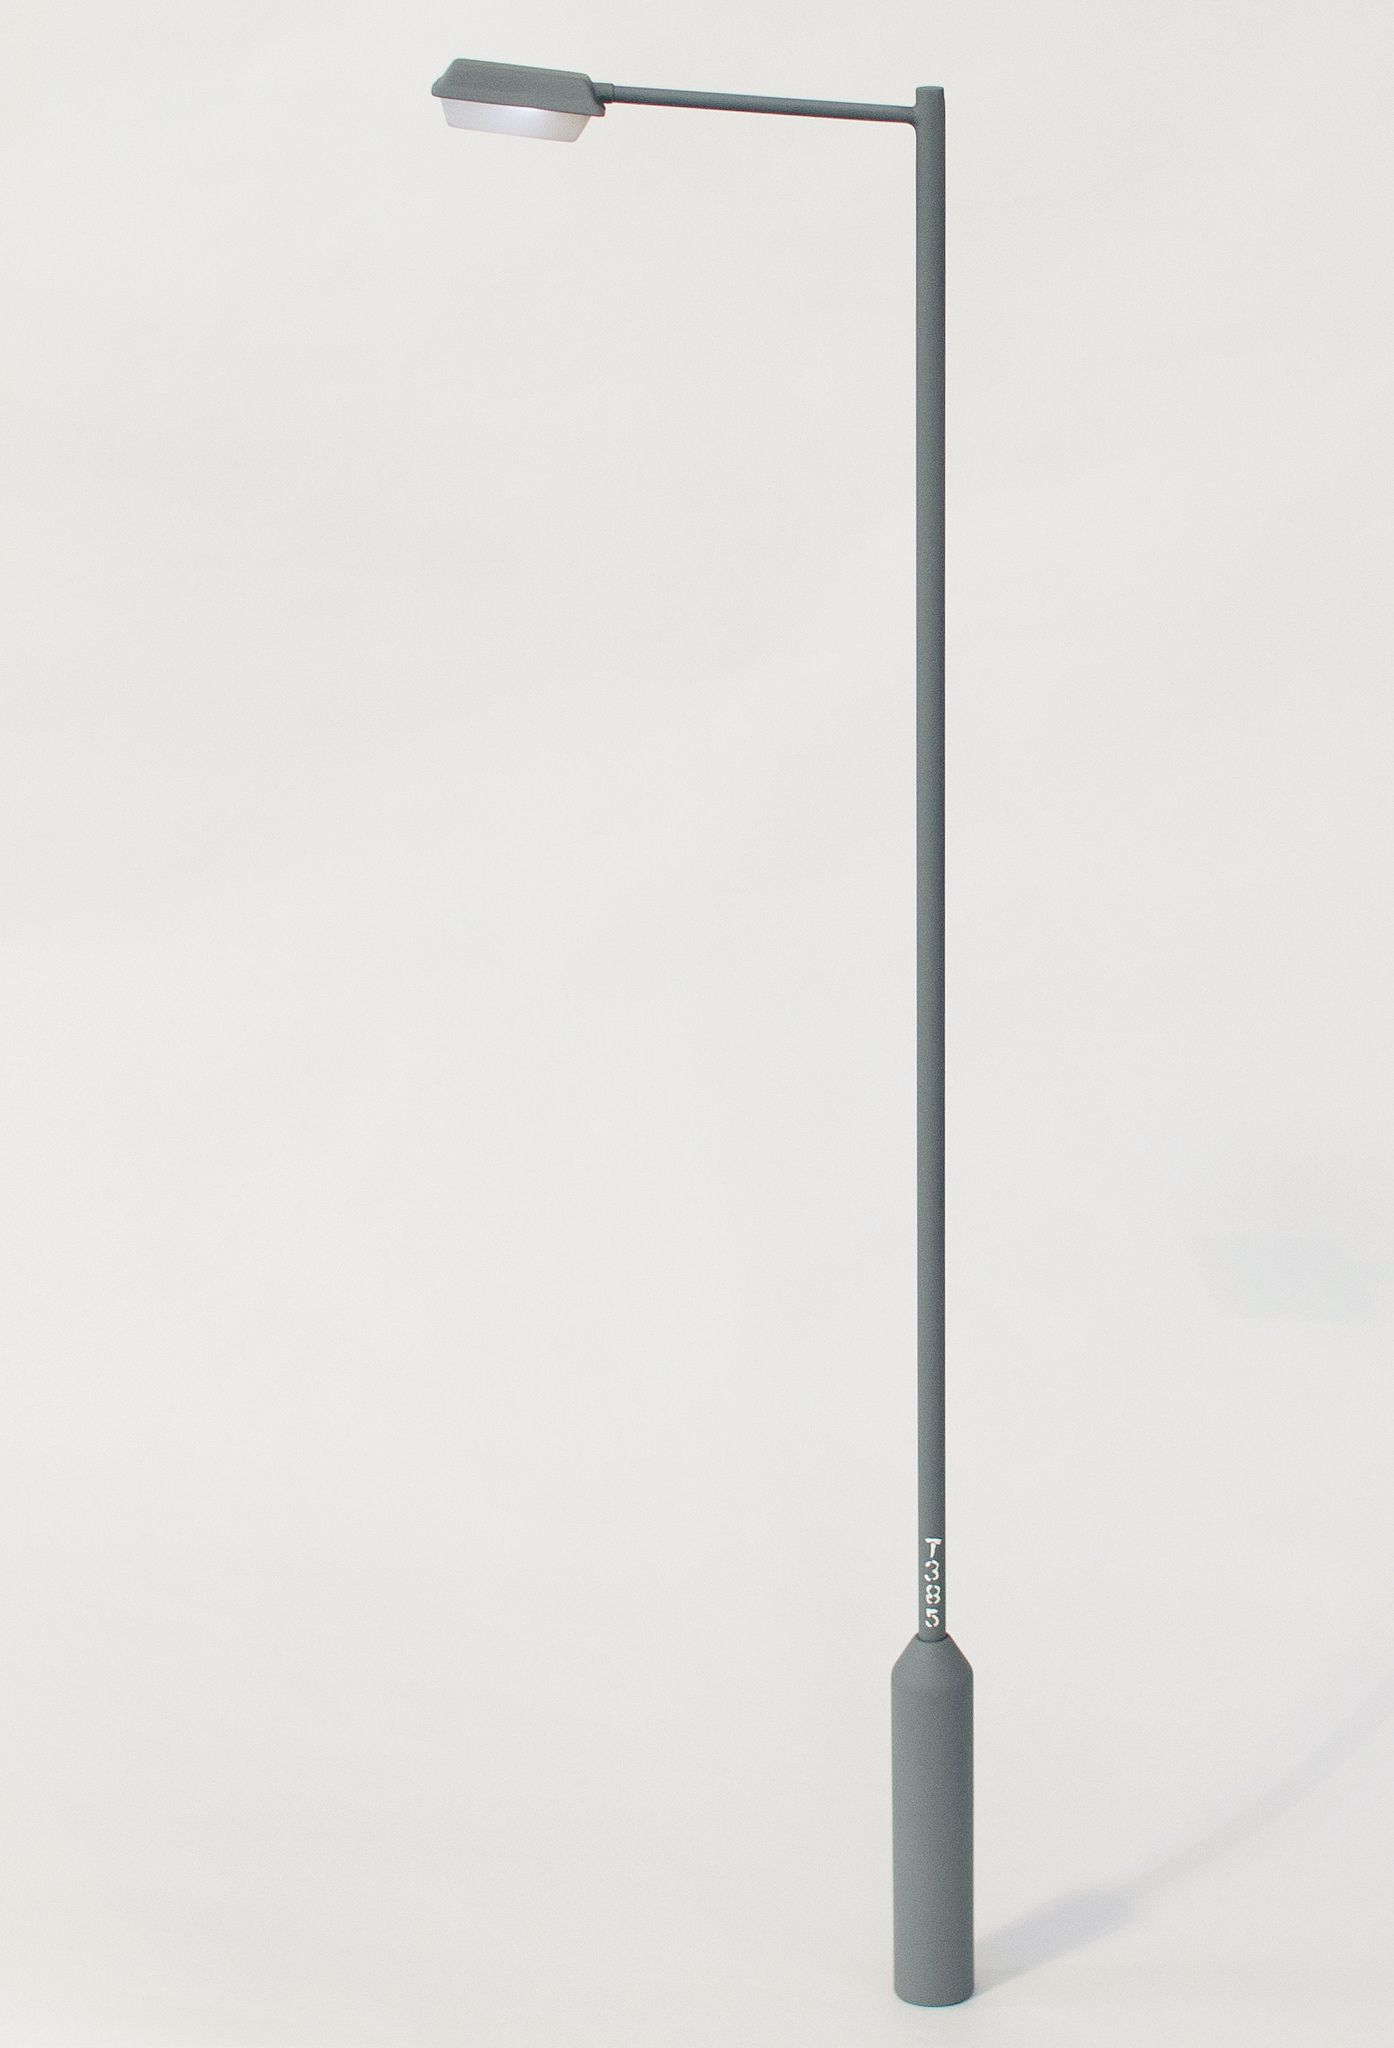 Pin by Wayne Fellows on Lamp Posts | Pinterest for Modern Street Lamp Post  45jwn